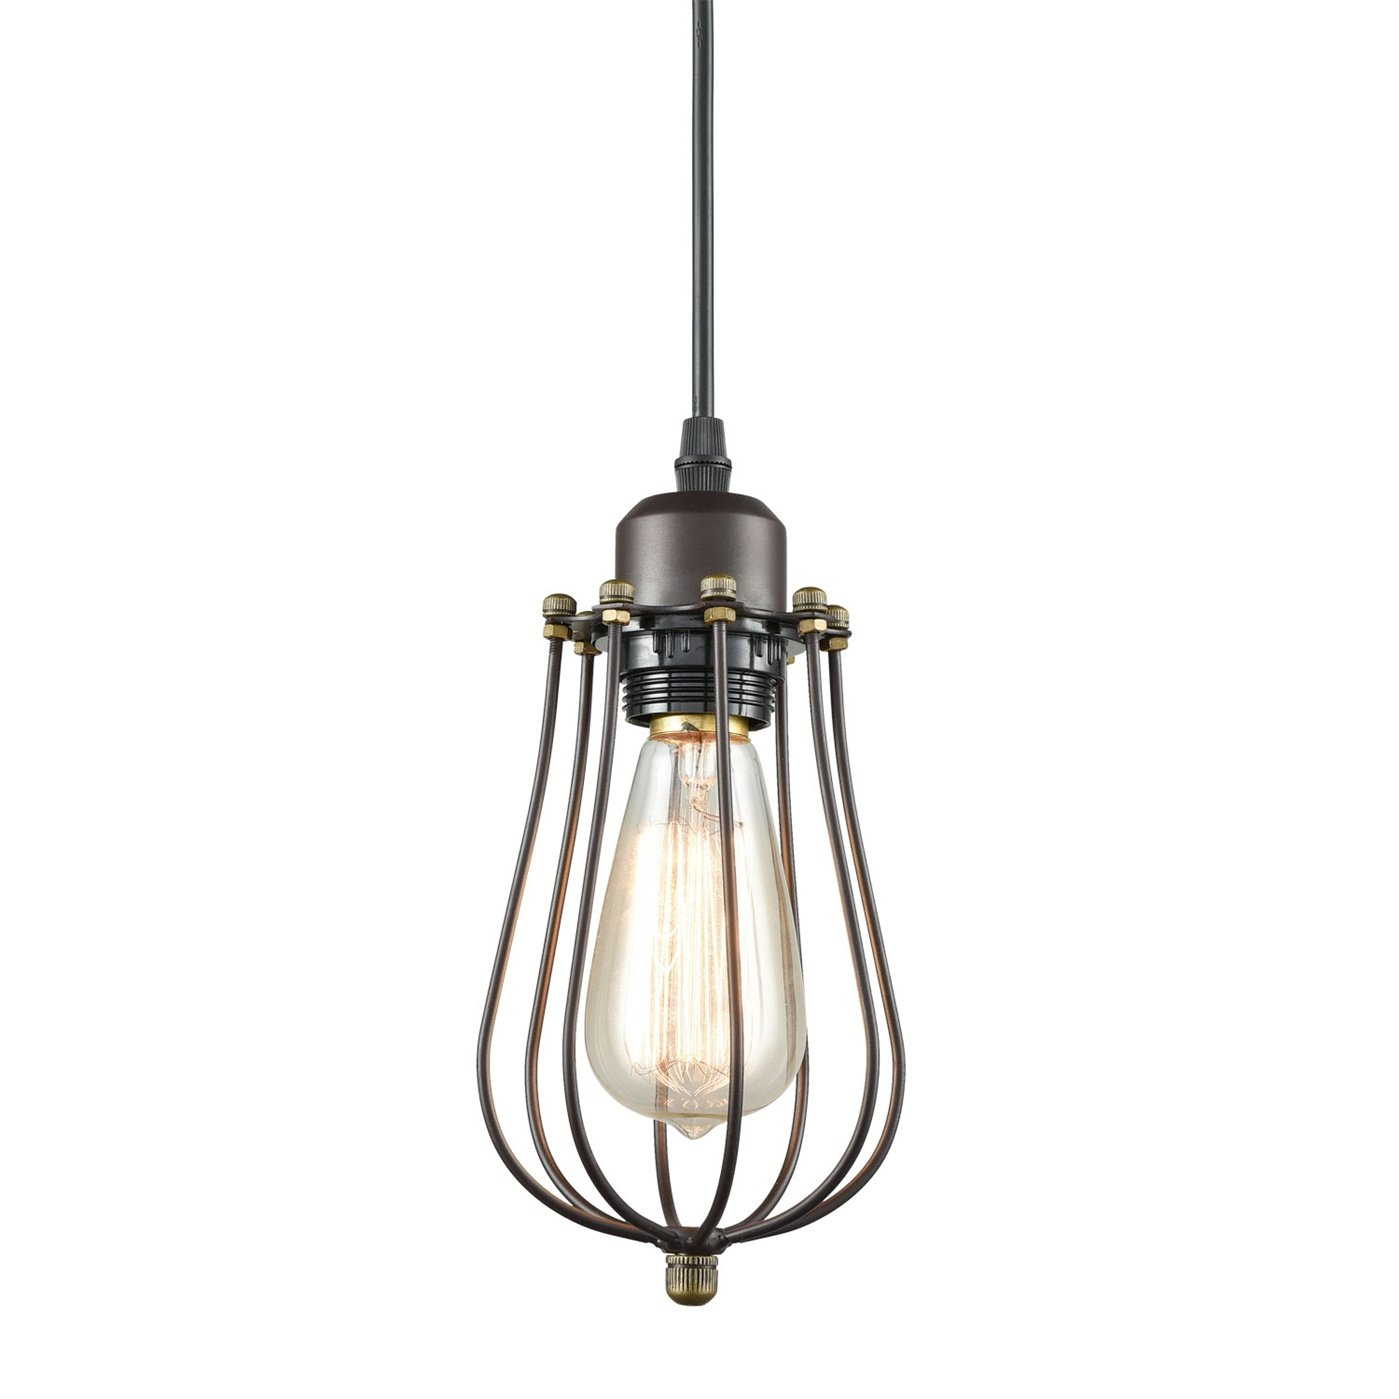 industrial lights rustic pictures of elegant lighting inspirational style pendant